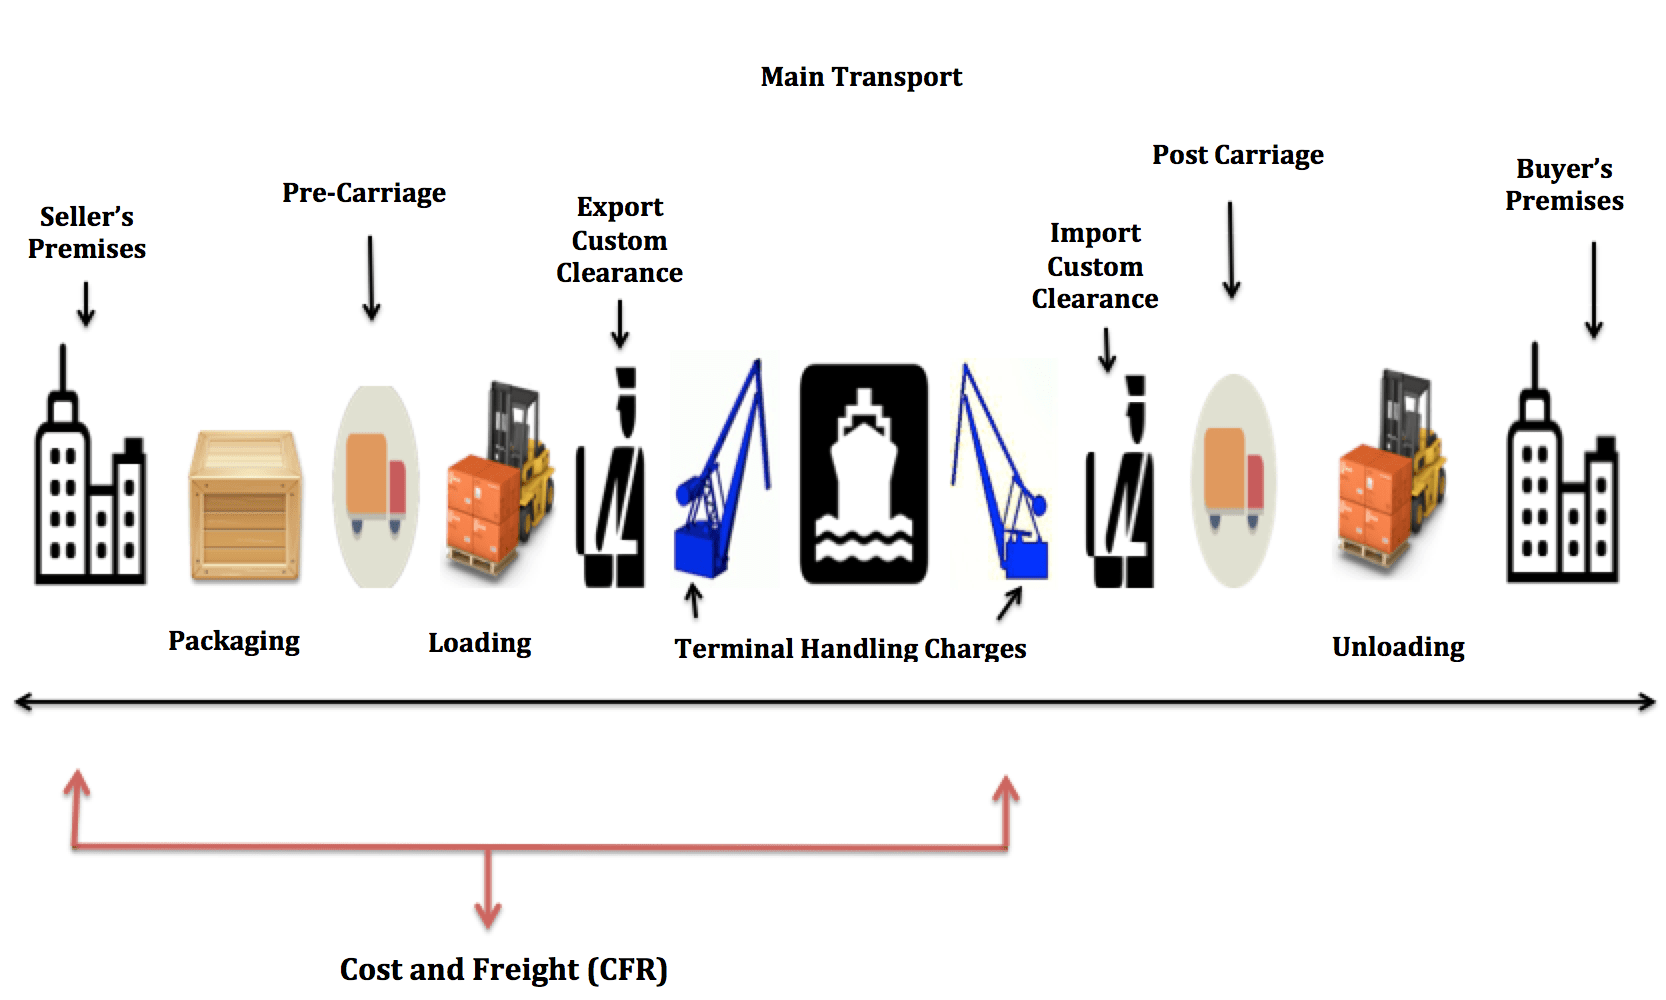 Cost and Freight